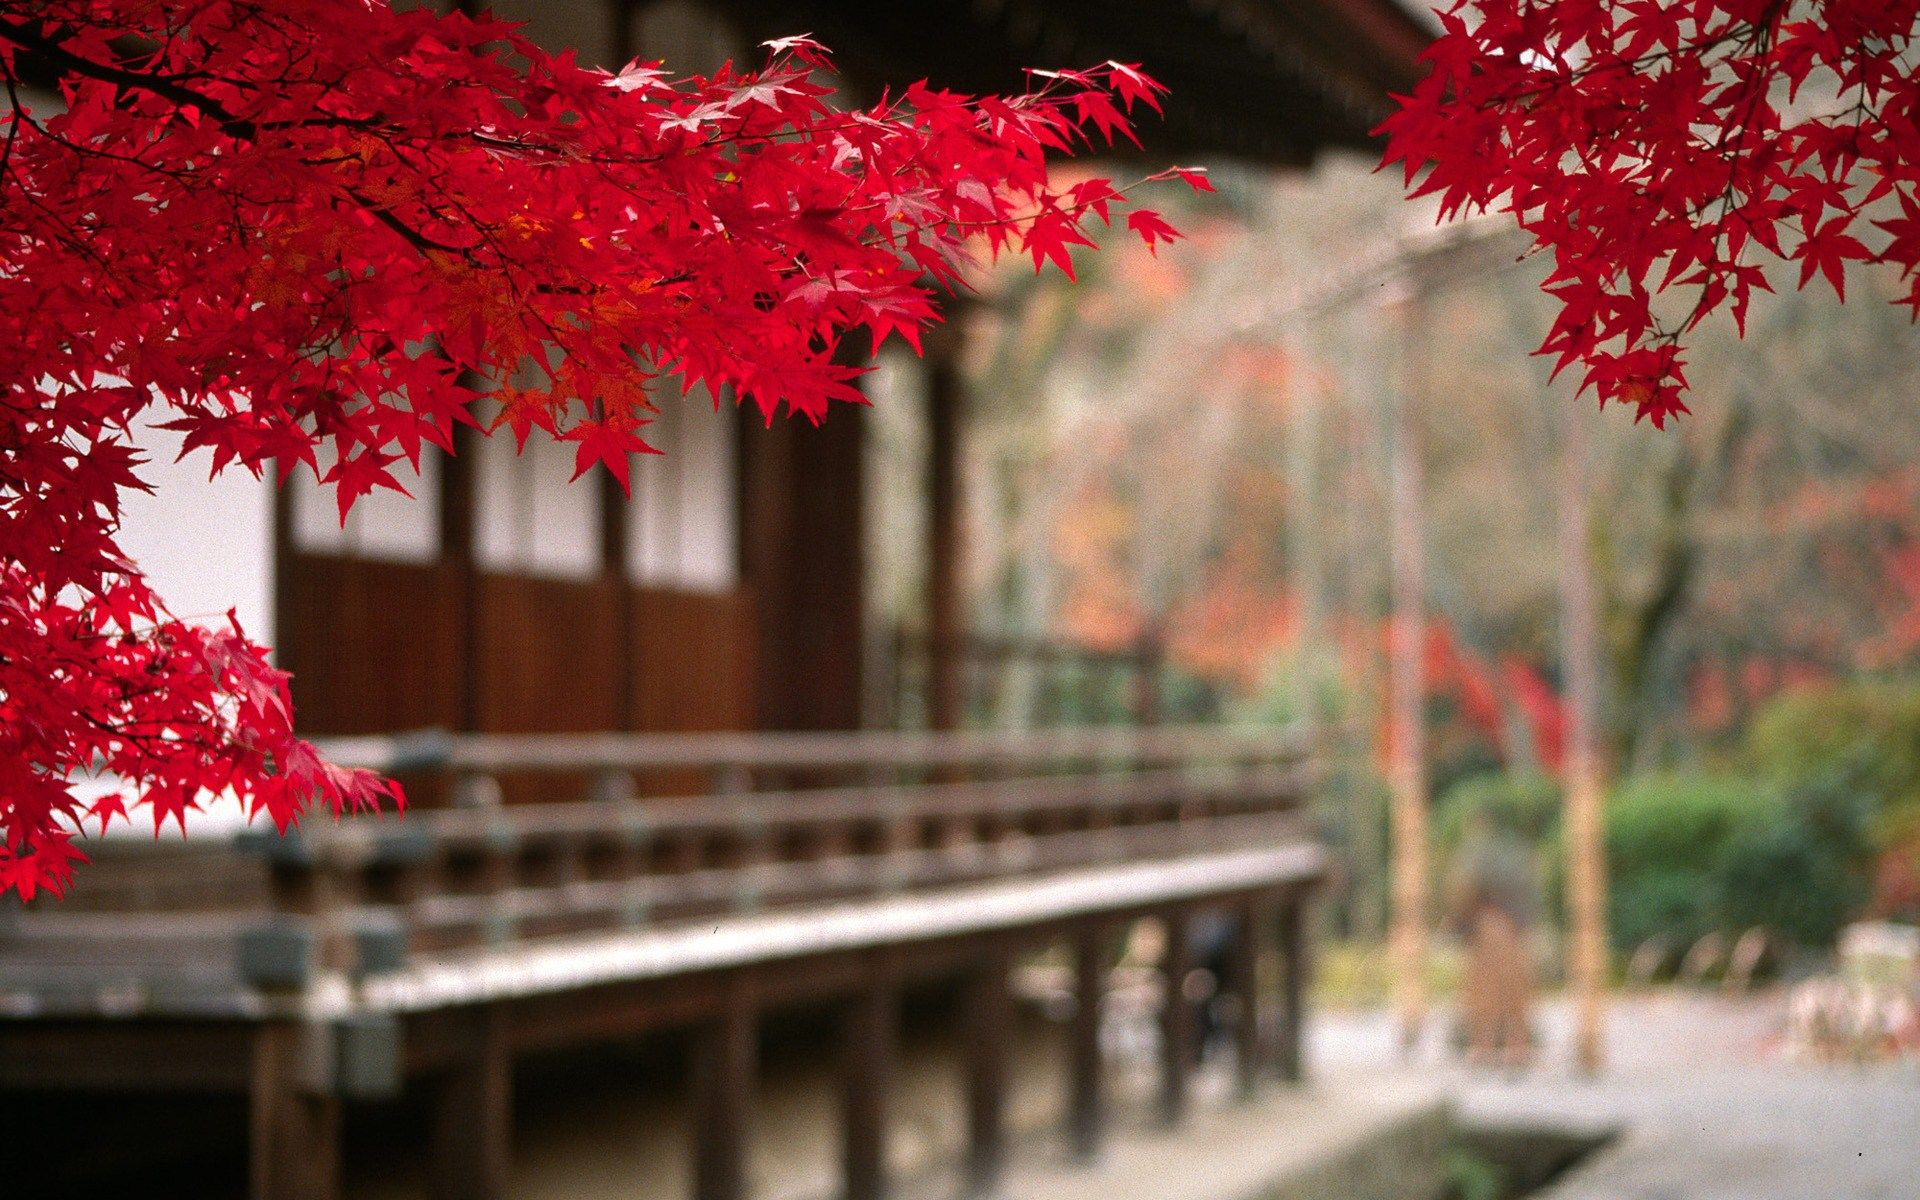 Fall Scenery Hd Wallpaper Find Out Japan Autumn Wallpaper On Http Hdpicorner Com